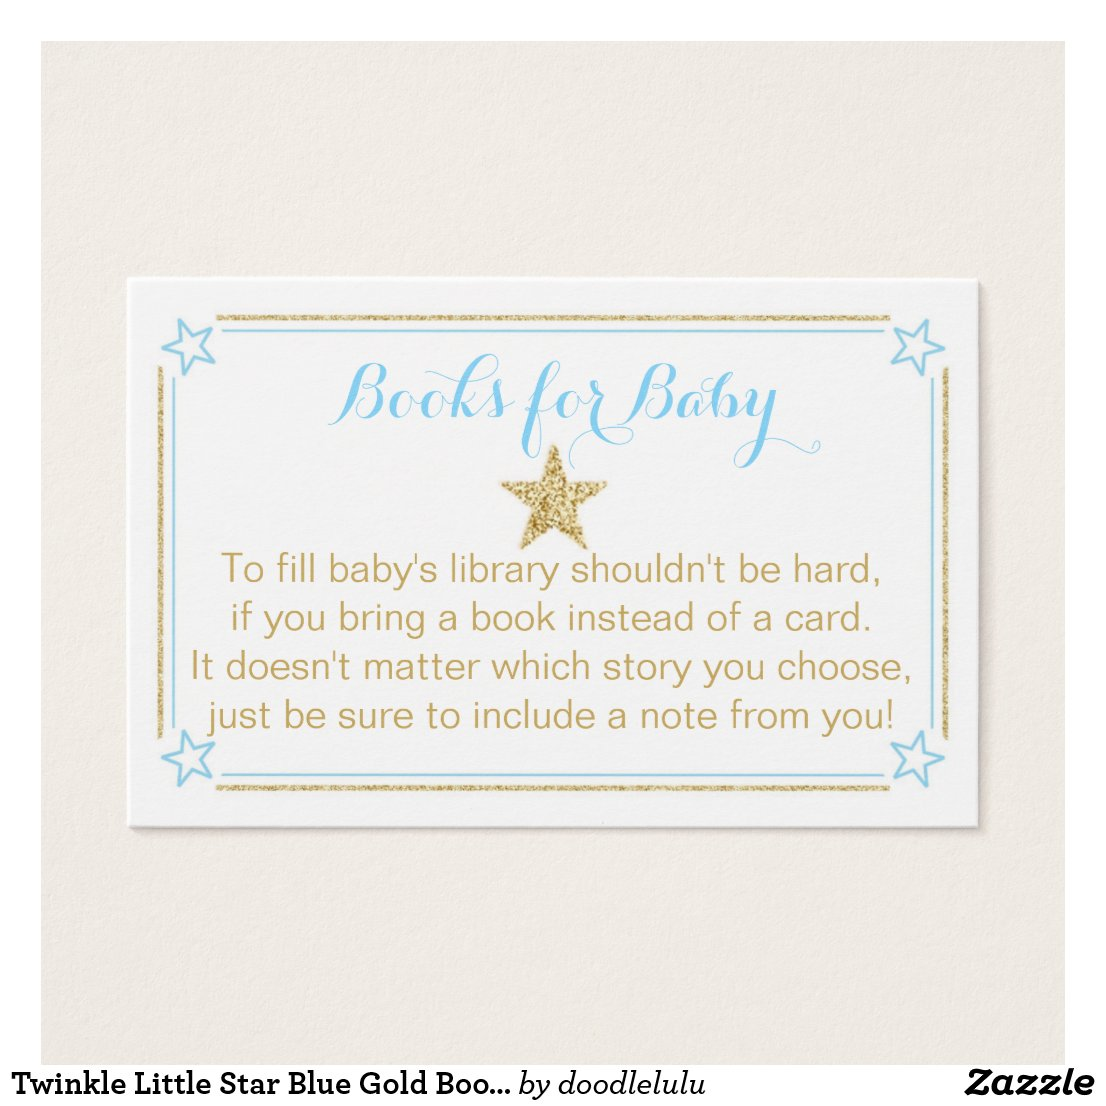 Star Blue Good Glitter Books For Baby